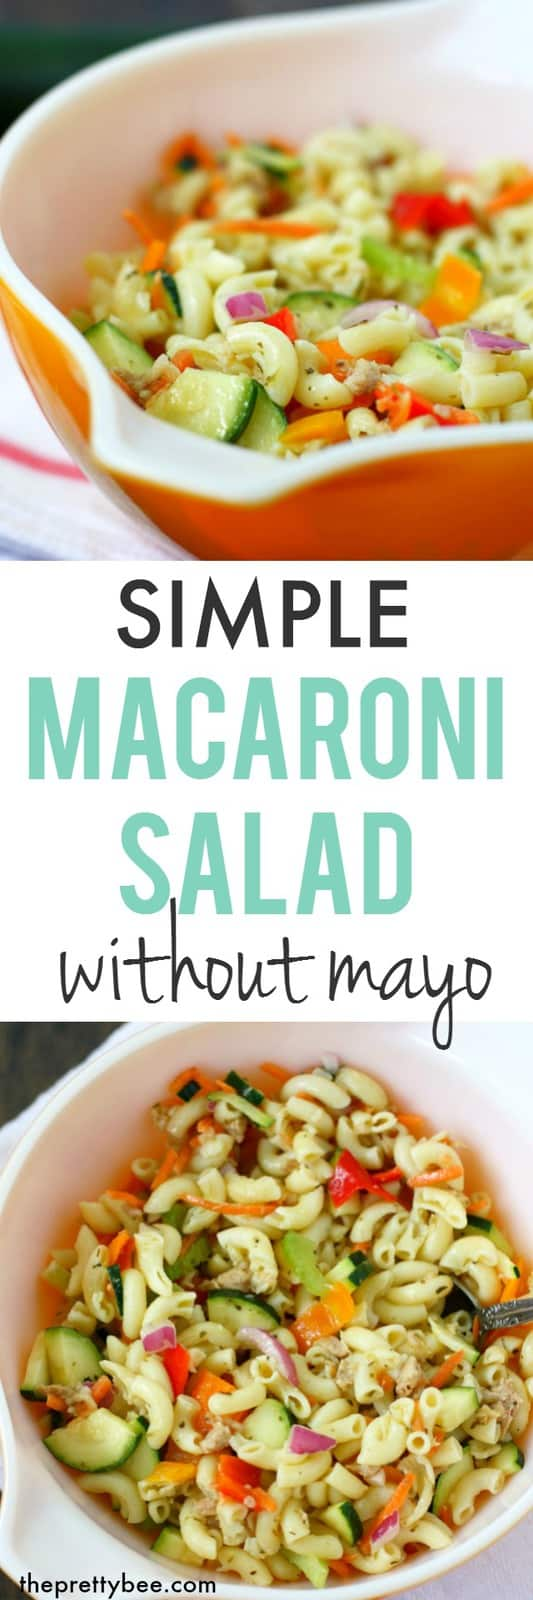 Delicious and easy macaroni salad without mayonnaise - this is a perfect salad for summer parties!